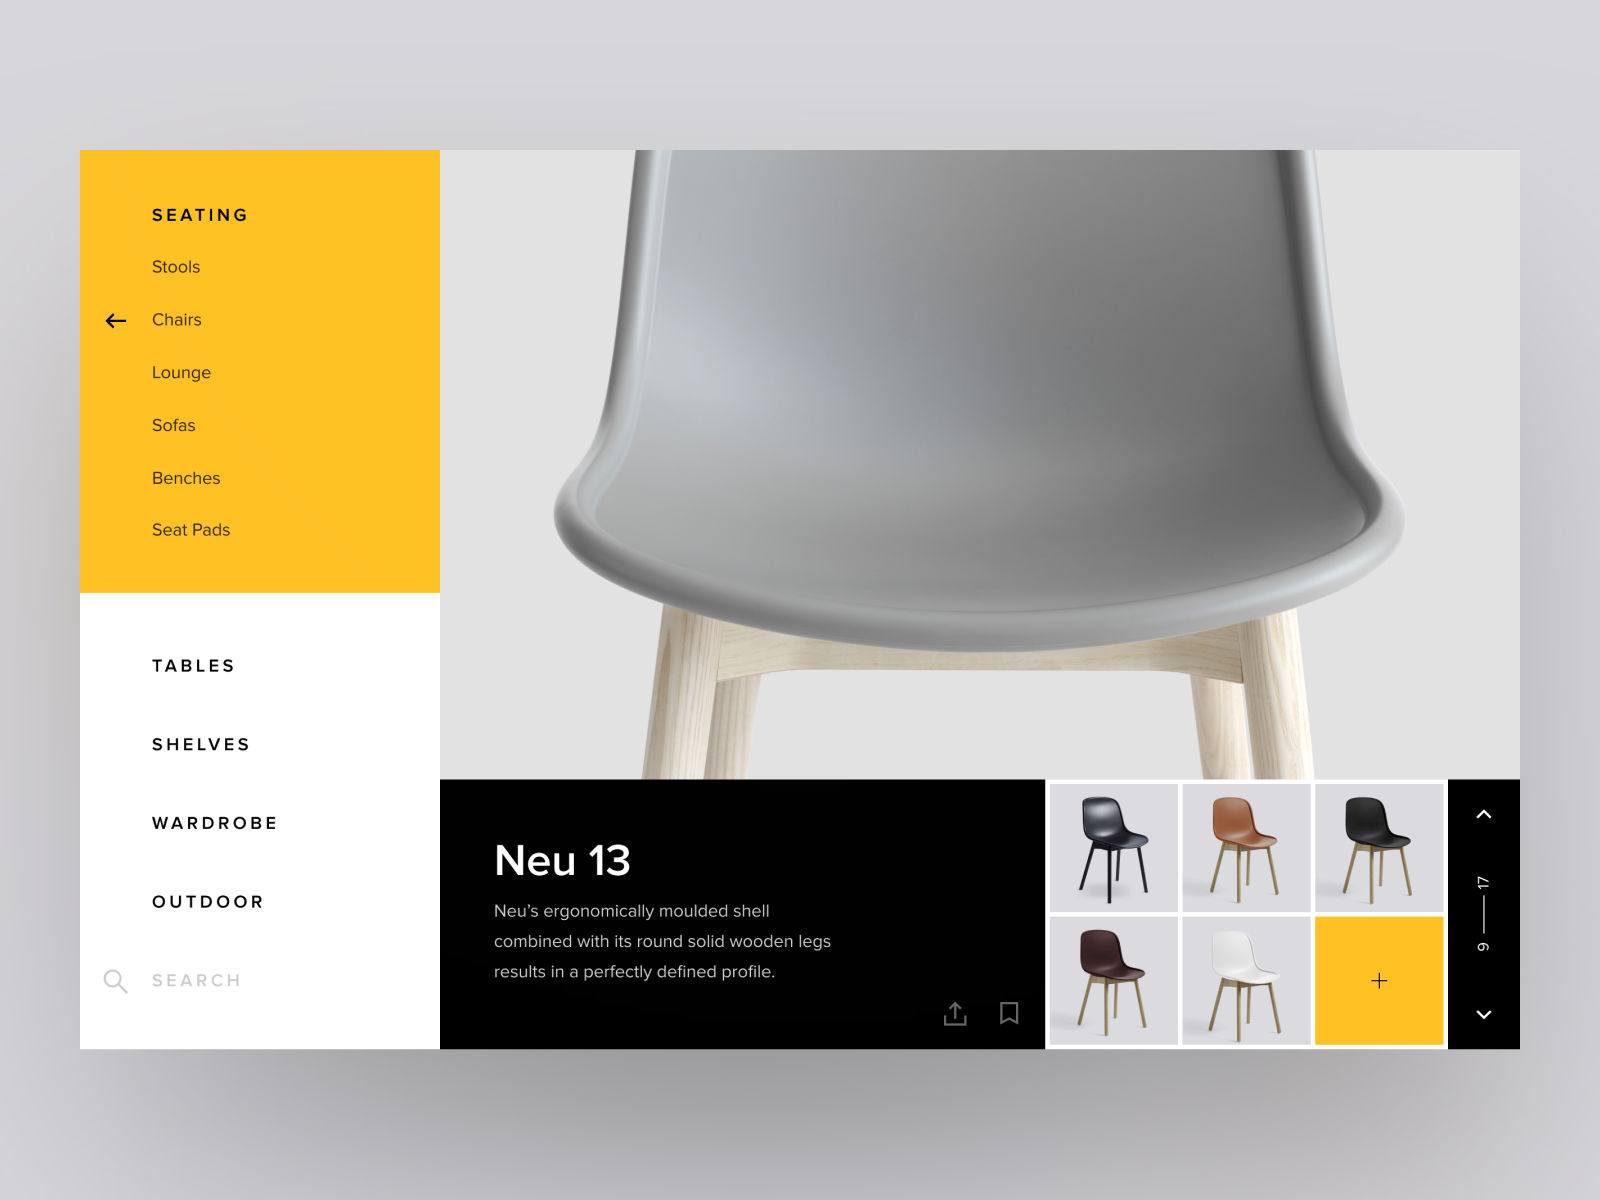 Furniture website by volorf 2x